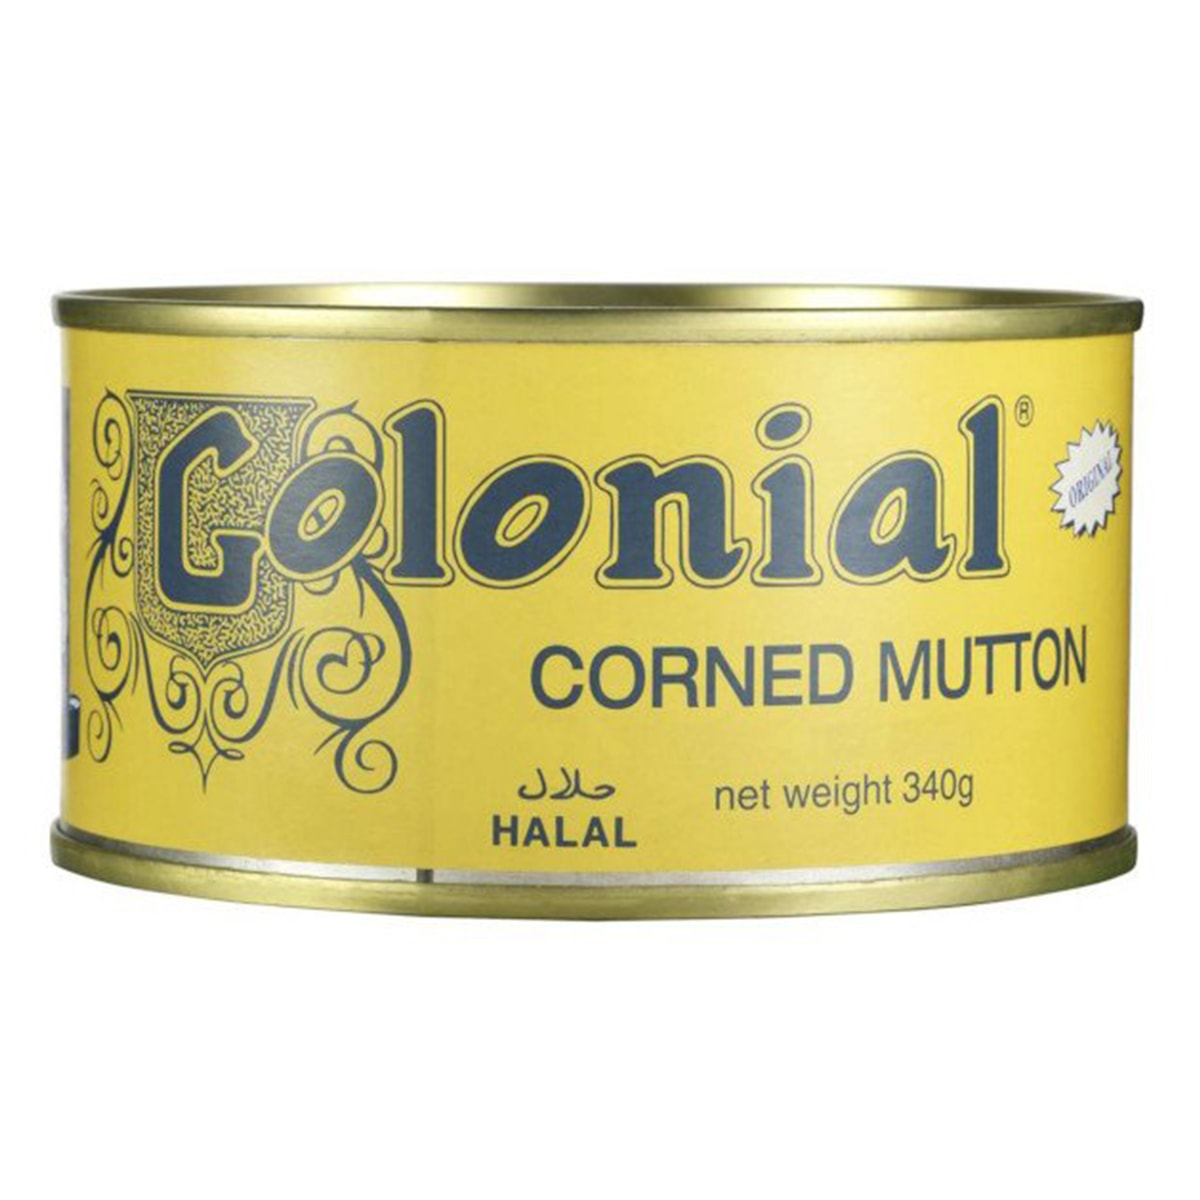 Buy Colonial Corned Mutton Halal - 340 gm